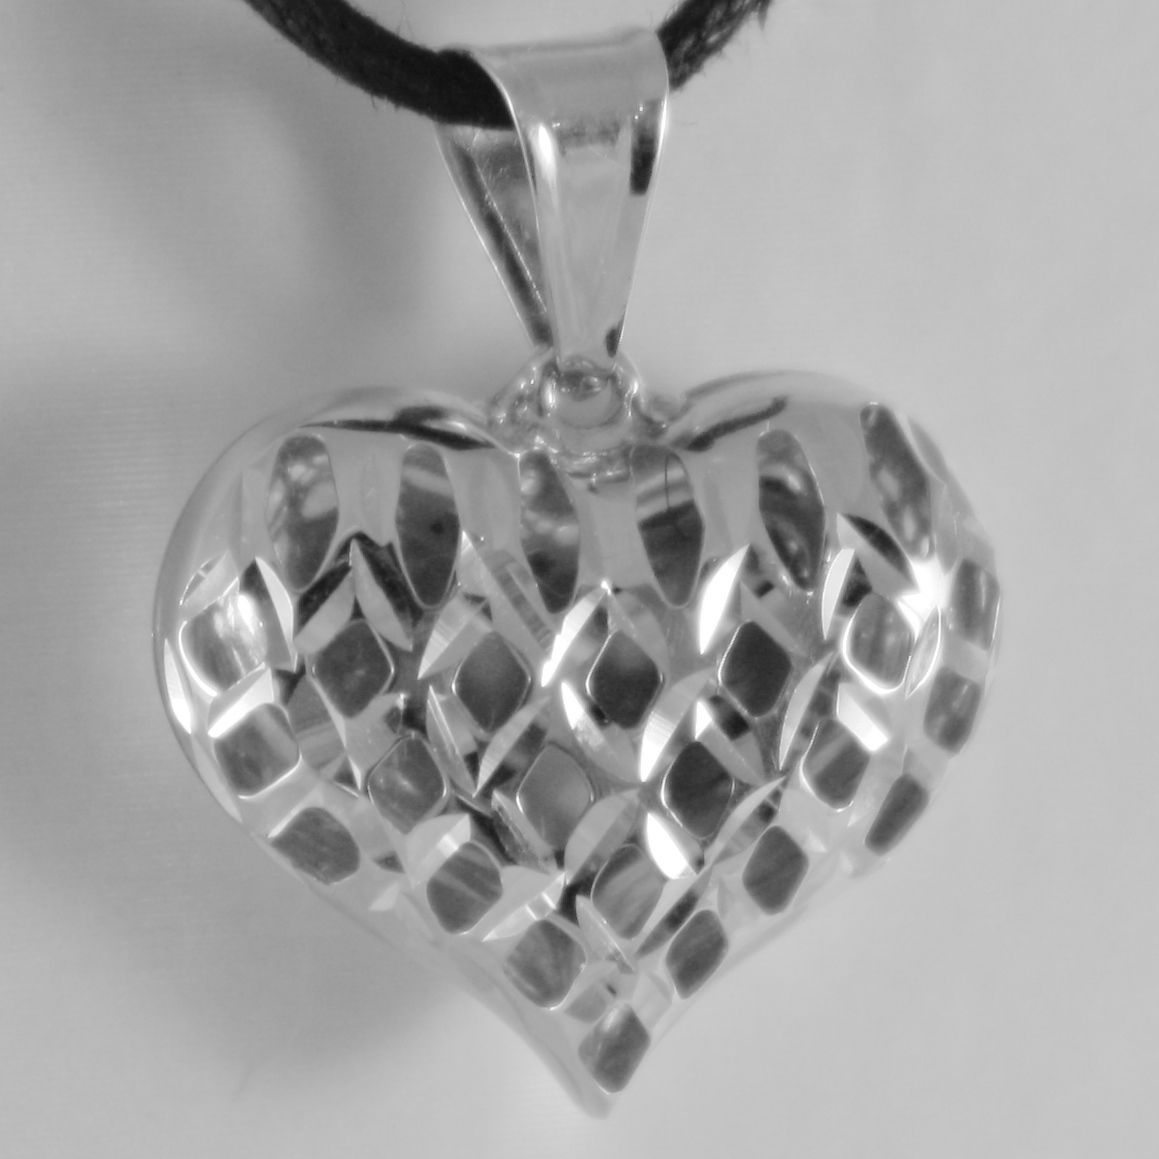 18K WHITE GOLD ROUNDED HEART CHARM PENDANT FINELY WORKED DRILLED MADE IN ITALY